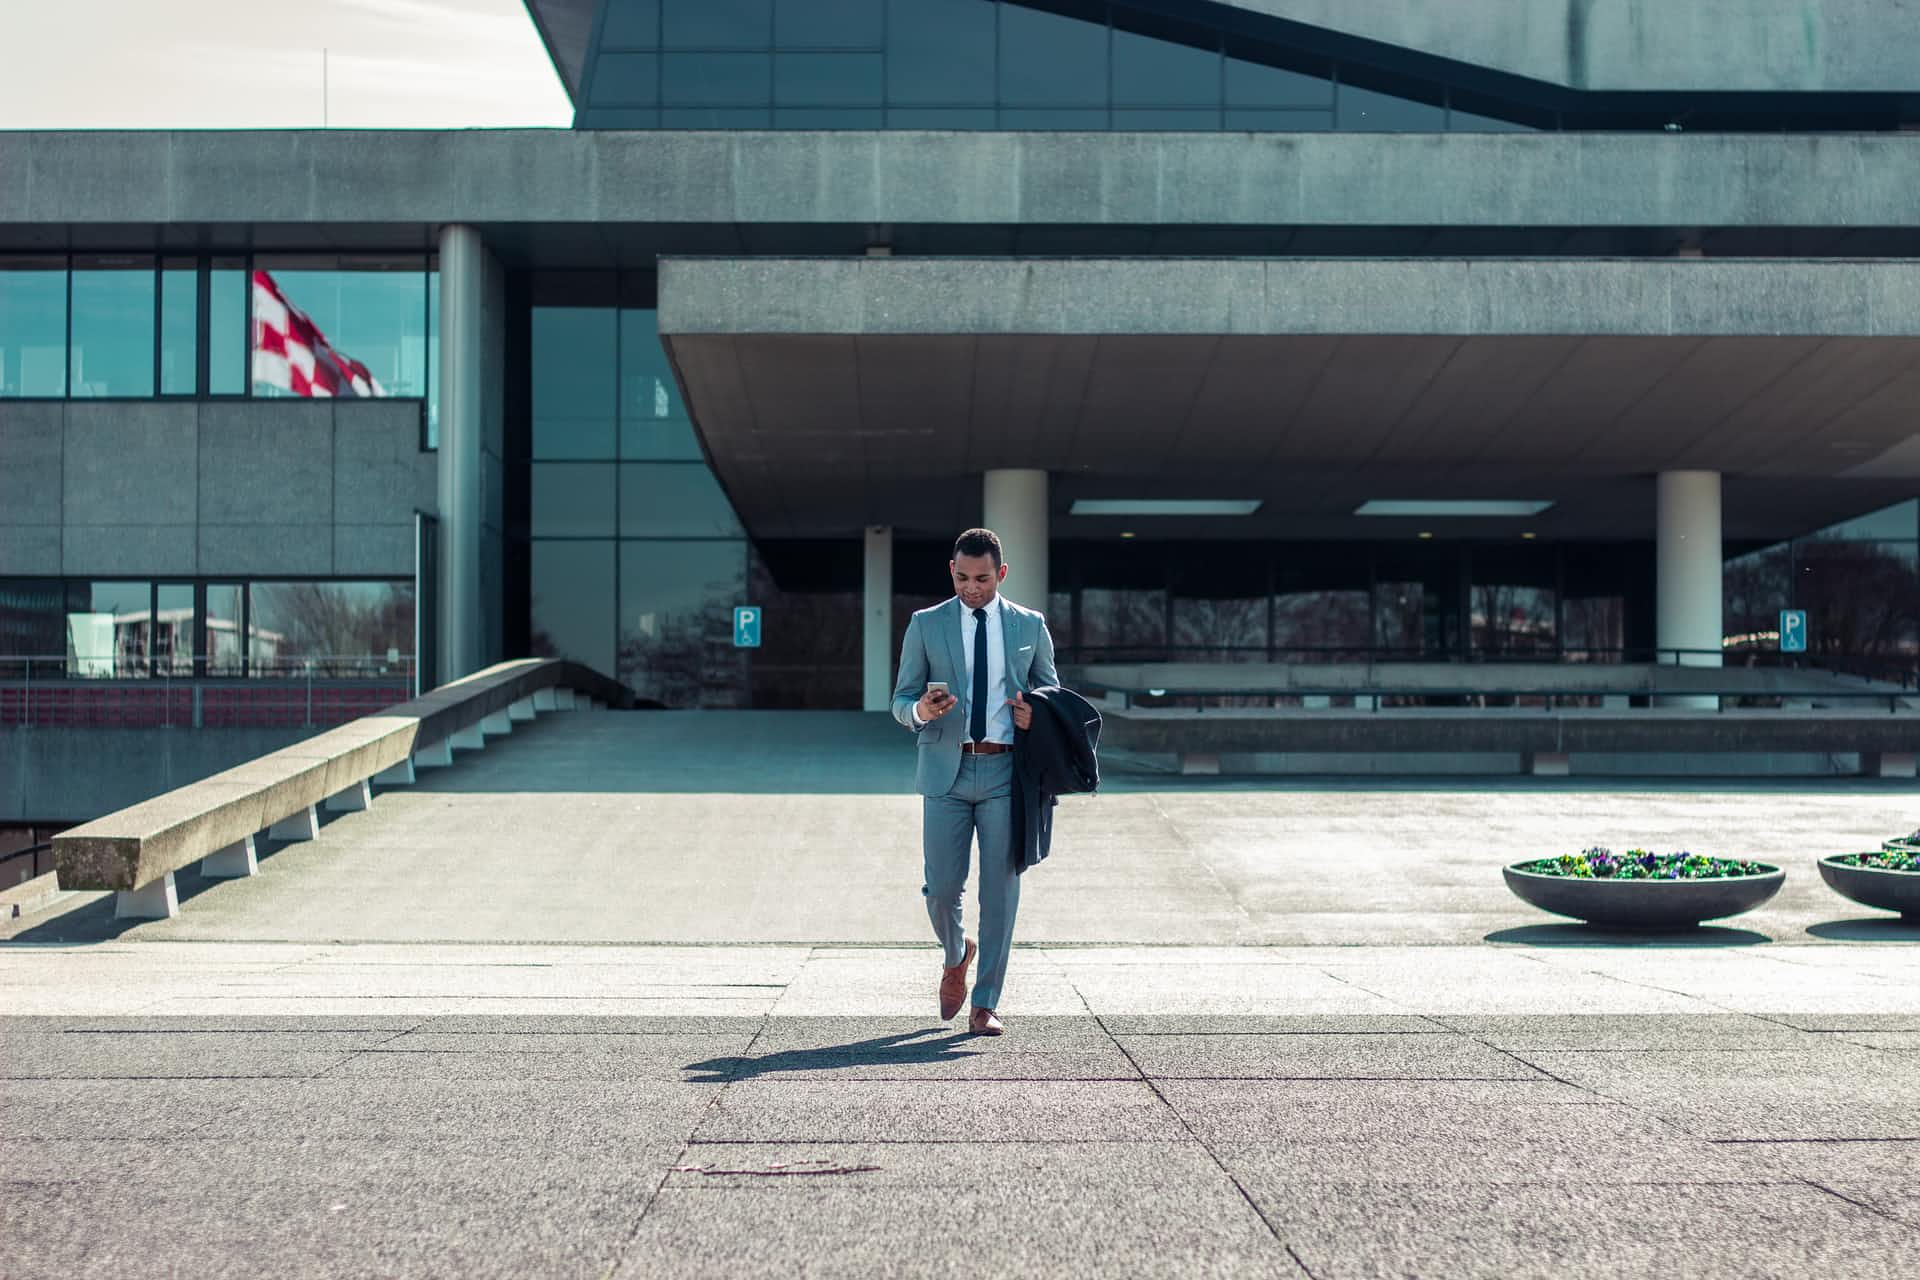 Well Dressed Man Exiting Building Looking at Phone